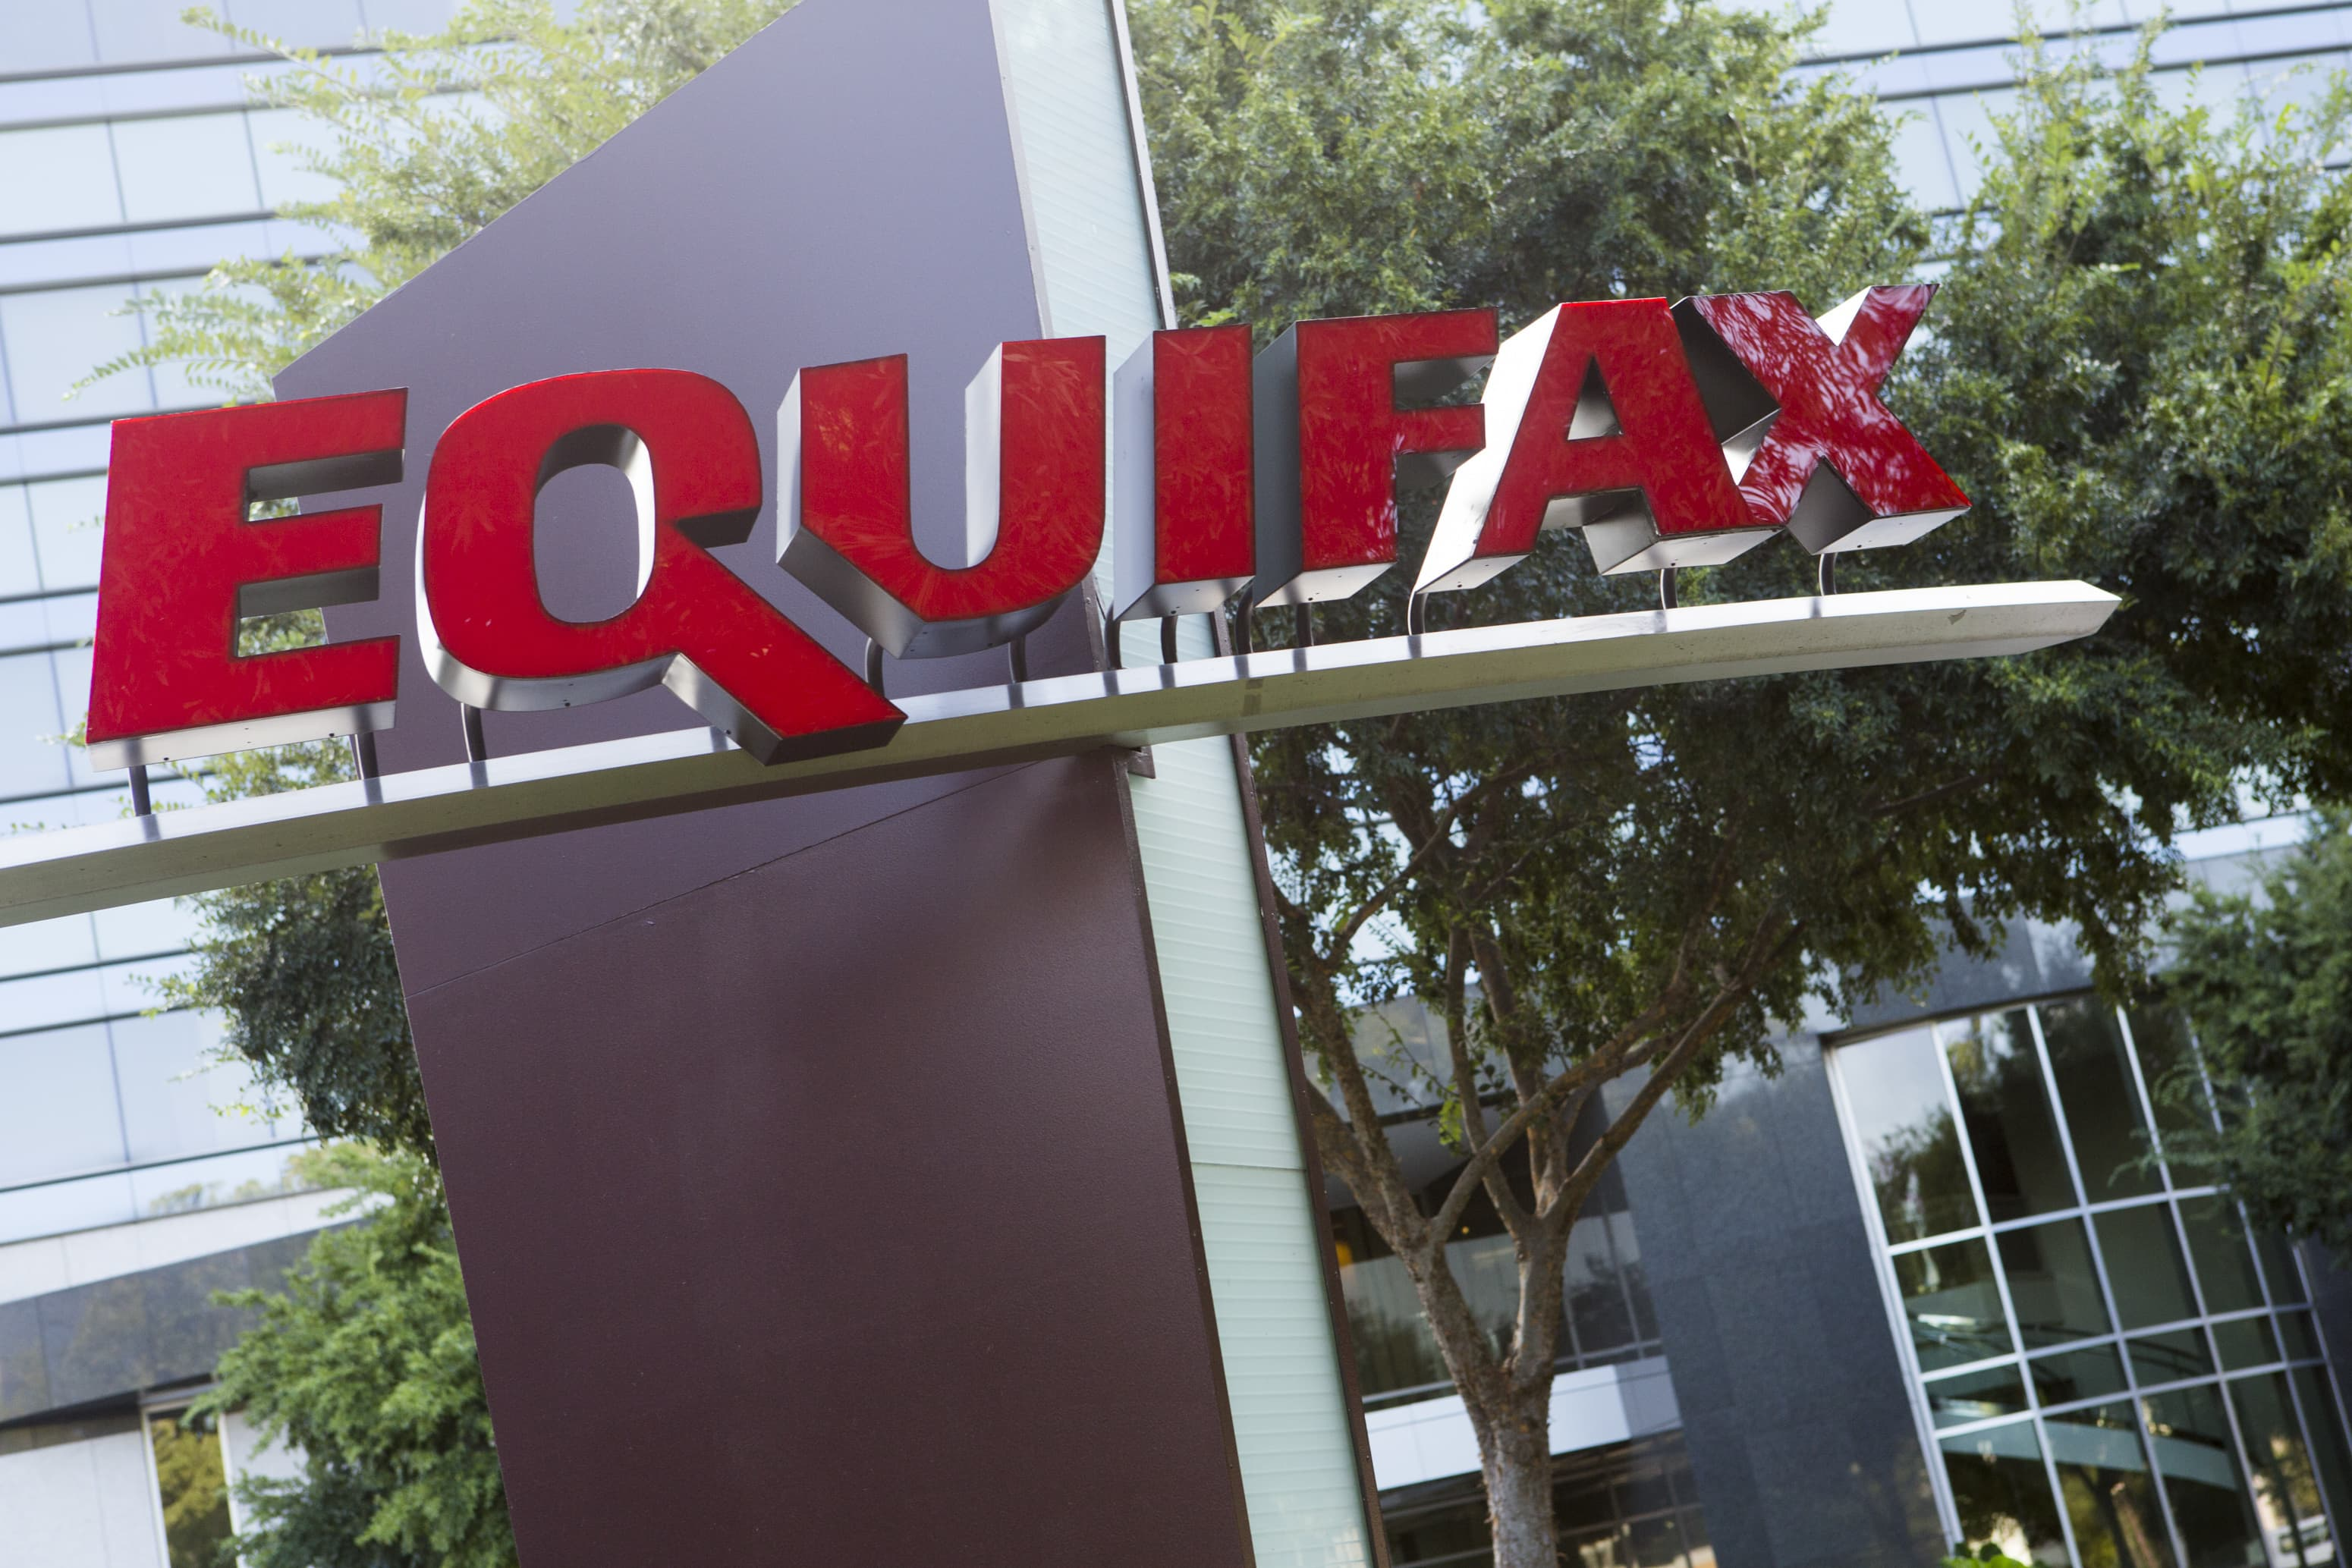 A logo sign outside of the headquarters of the consumer credit rating firm Equifax in Atlanta, Georgia.